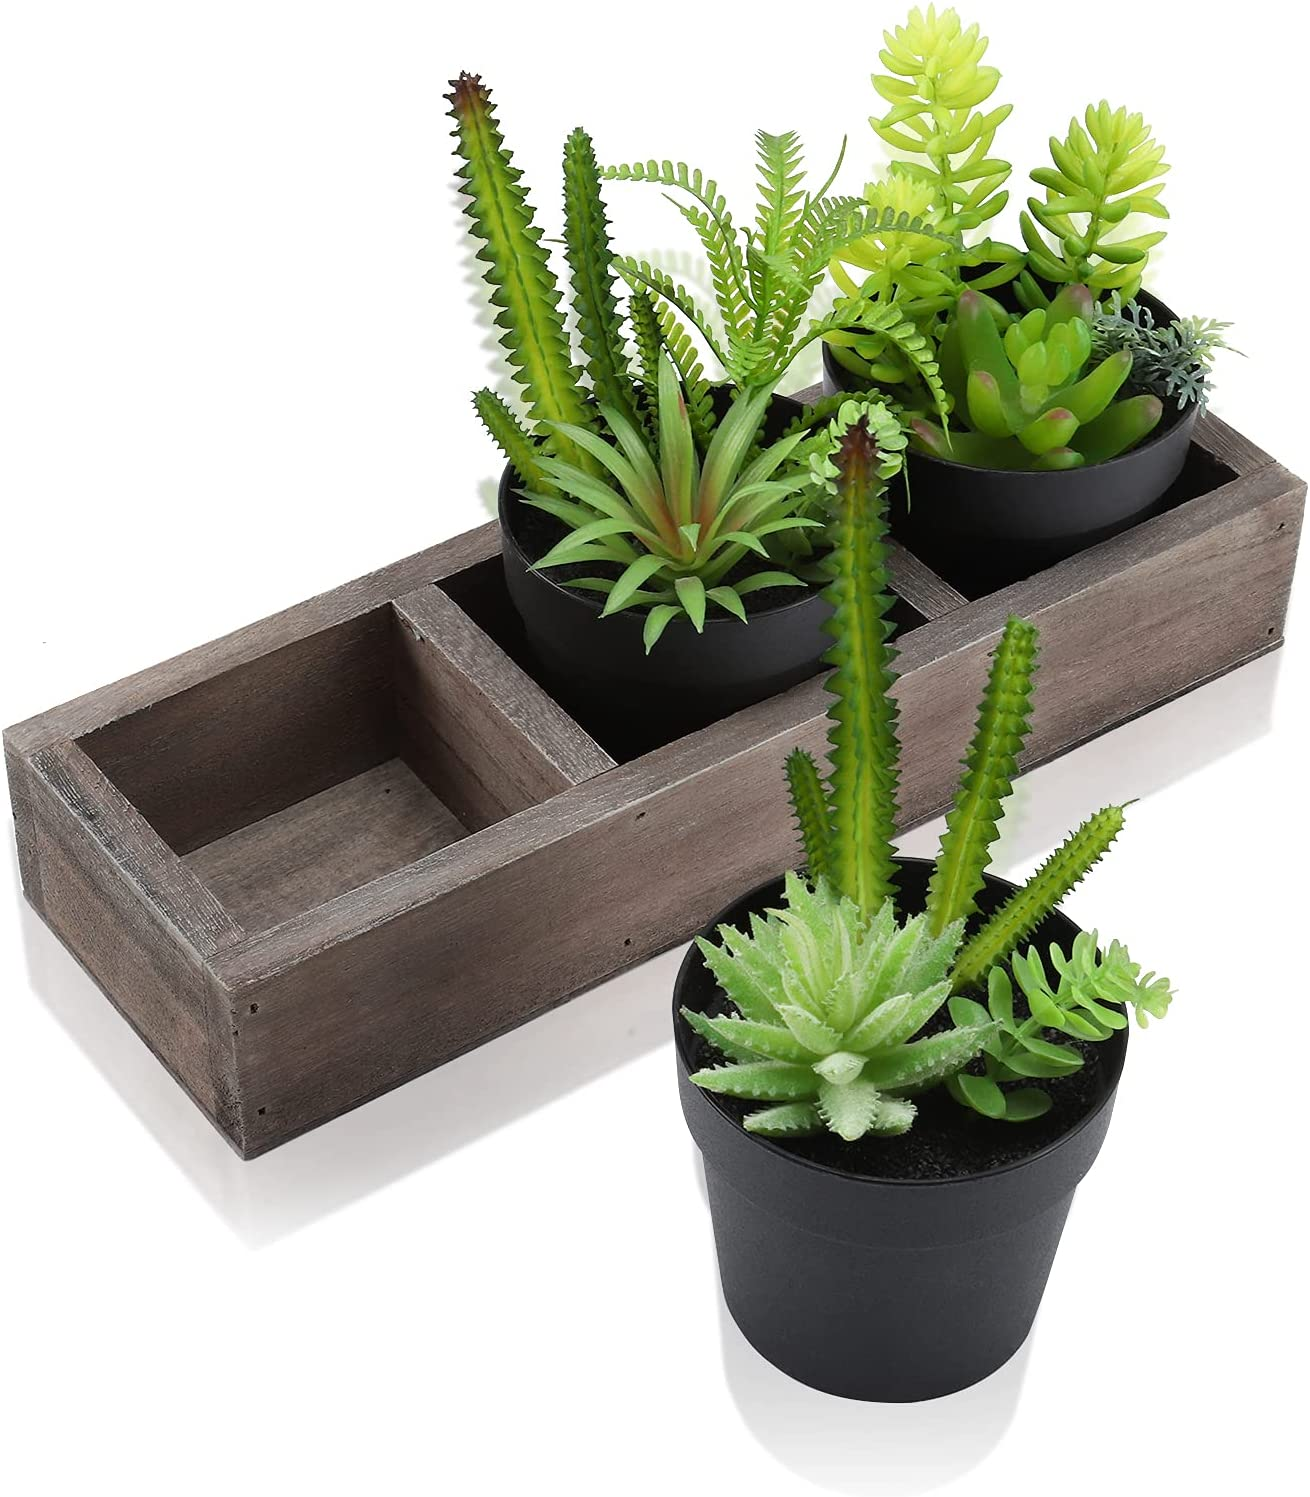 Remittur Set of 3 Small Fake Plants with Wooden Planter Box, Artificial Plants for Home Decor Indoor, Mini Faux Plants Indoor for Living Room Decor, Fake Plants Decor for Your Home and Office